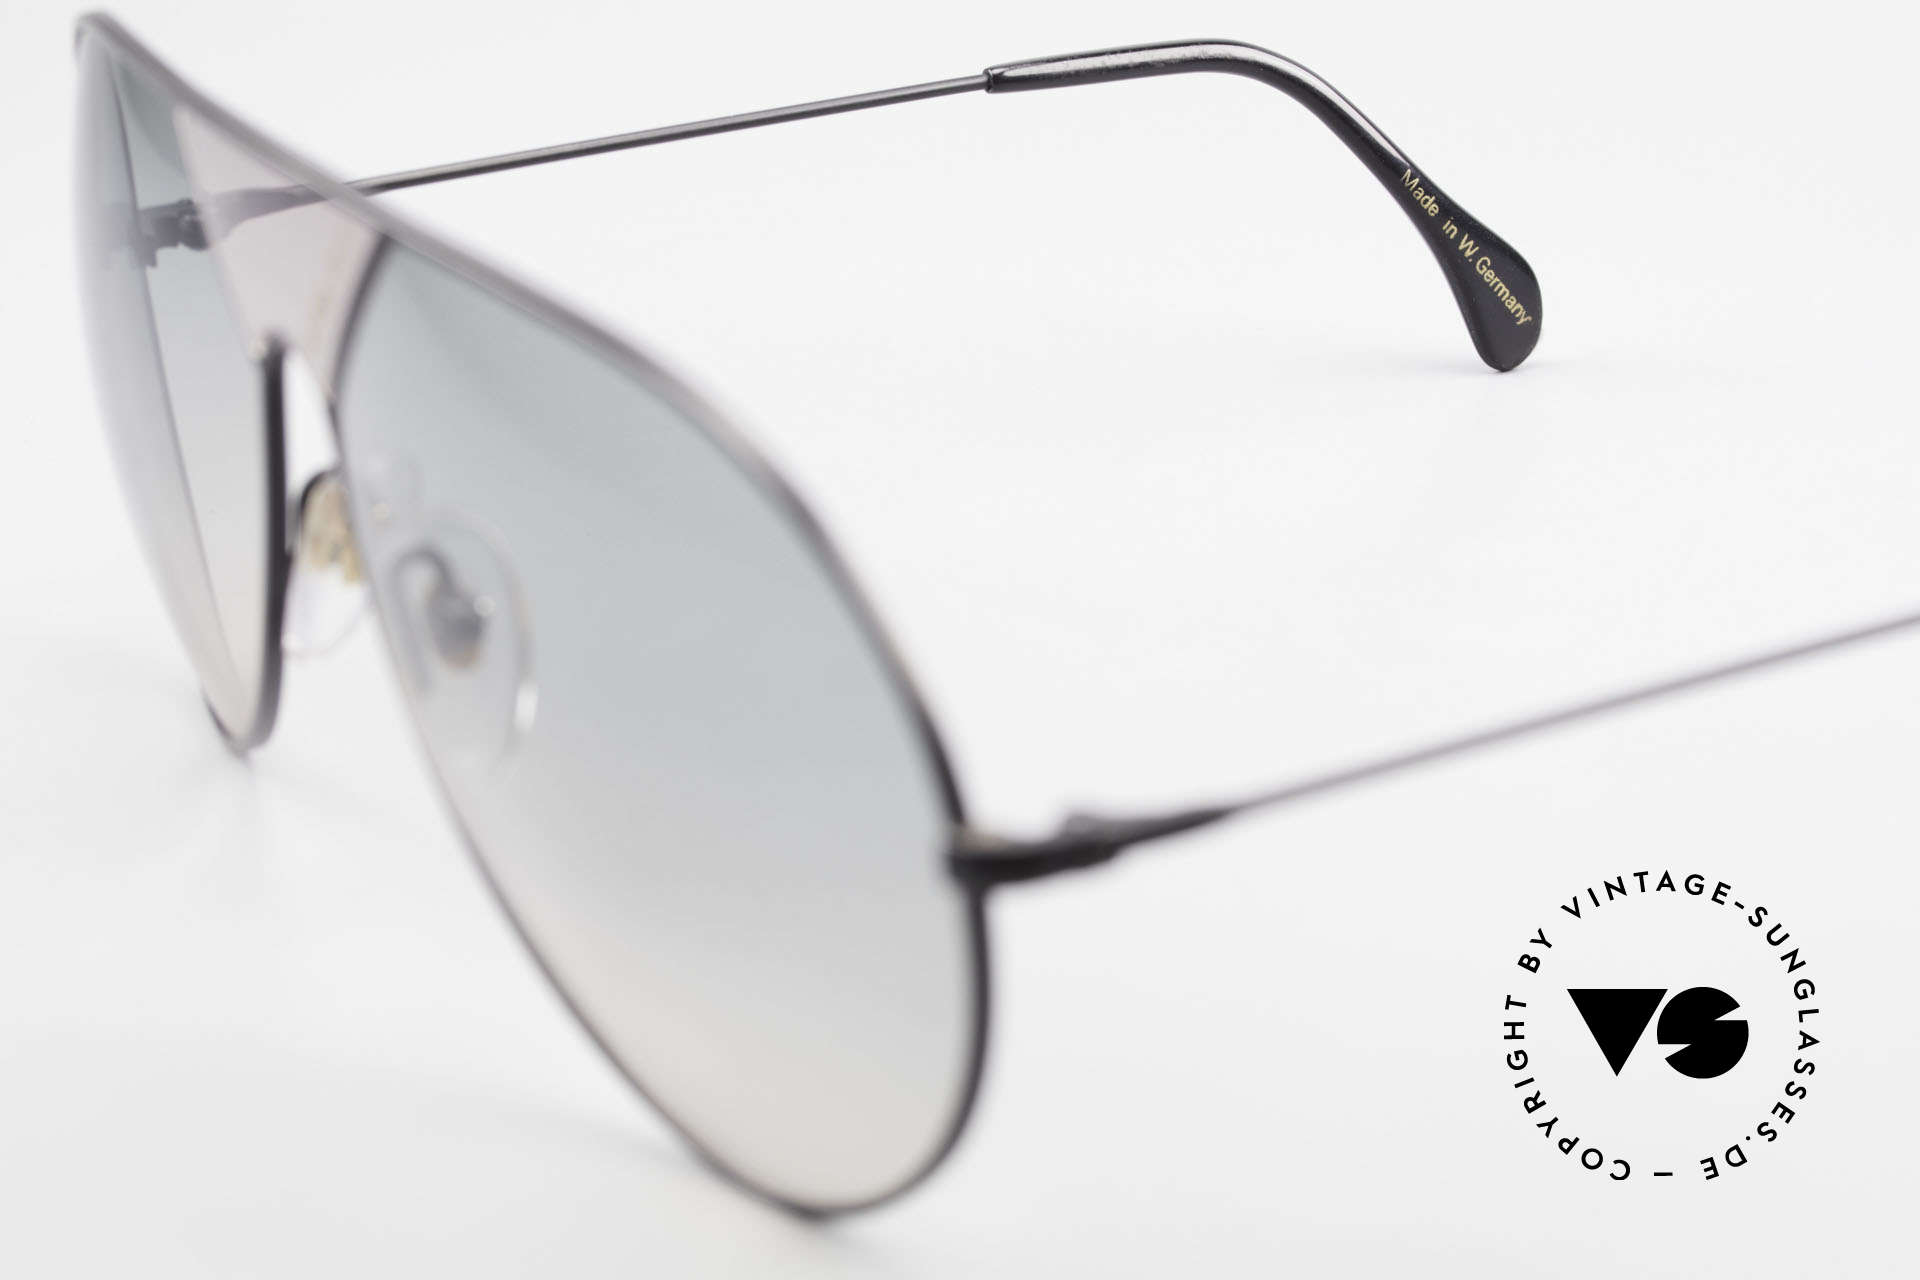 Alpina TR3 80's Sunglasses Limited Edition, NO RETRO shades; a 35 years old single item; vertu, Made for Men